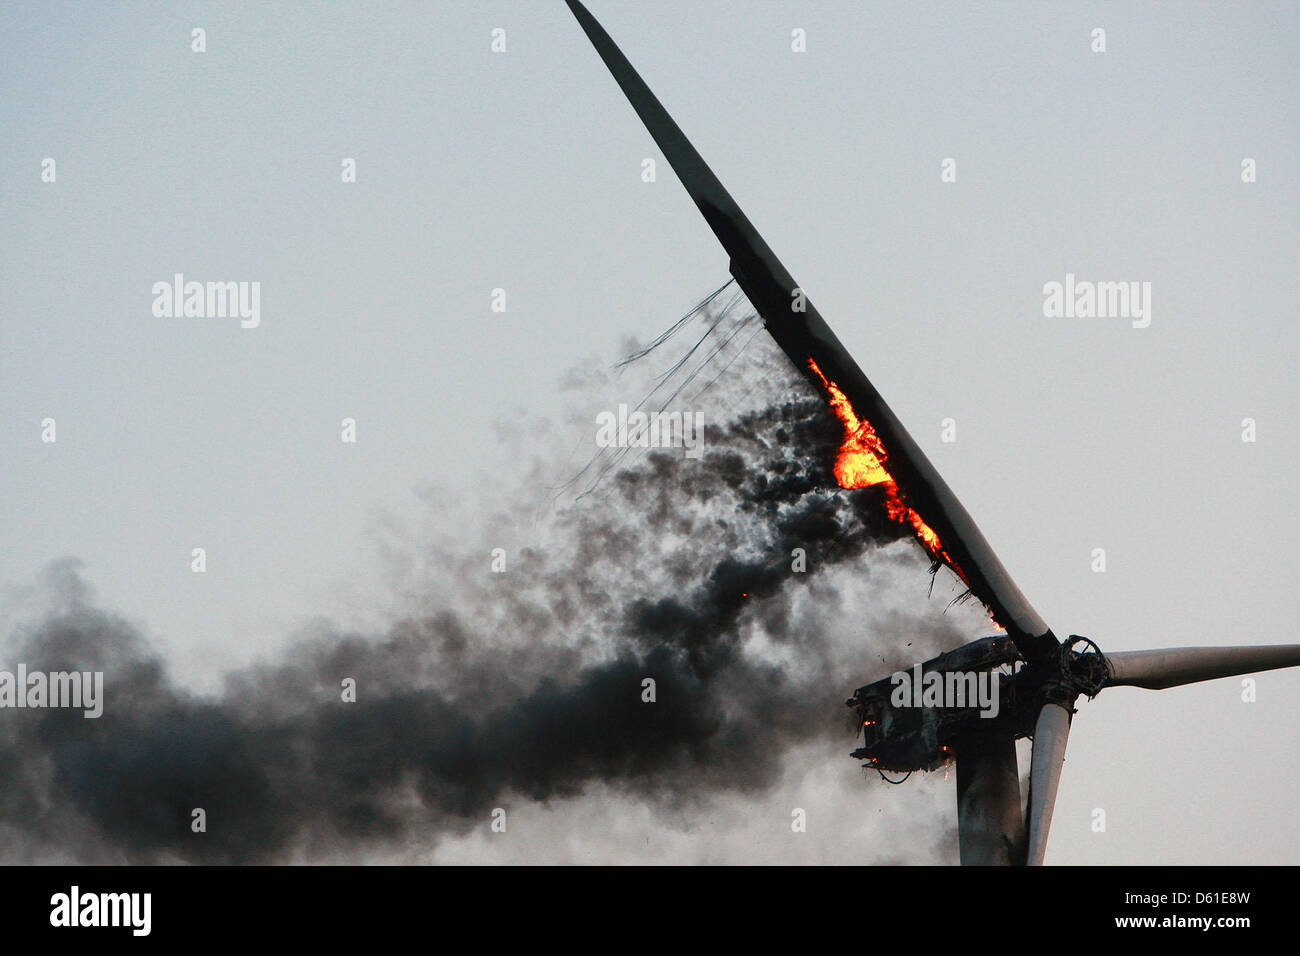 A wind power plant is burning at a wind park in Neukirchen, germany, 19 April 2012. According to the firebrigade, - Stock Image